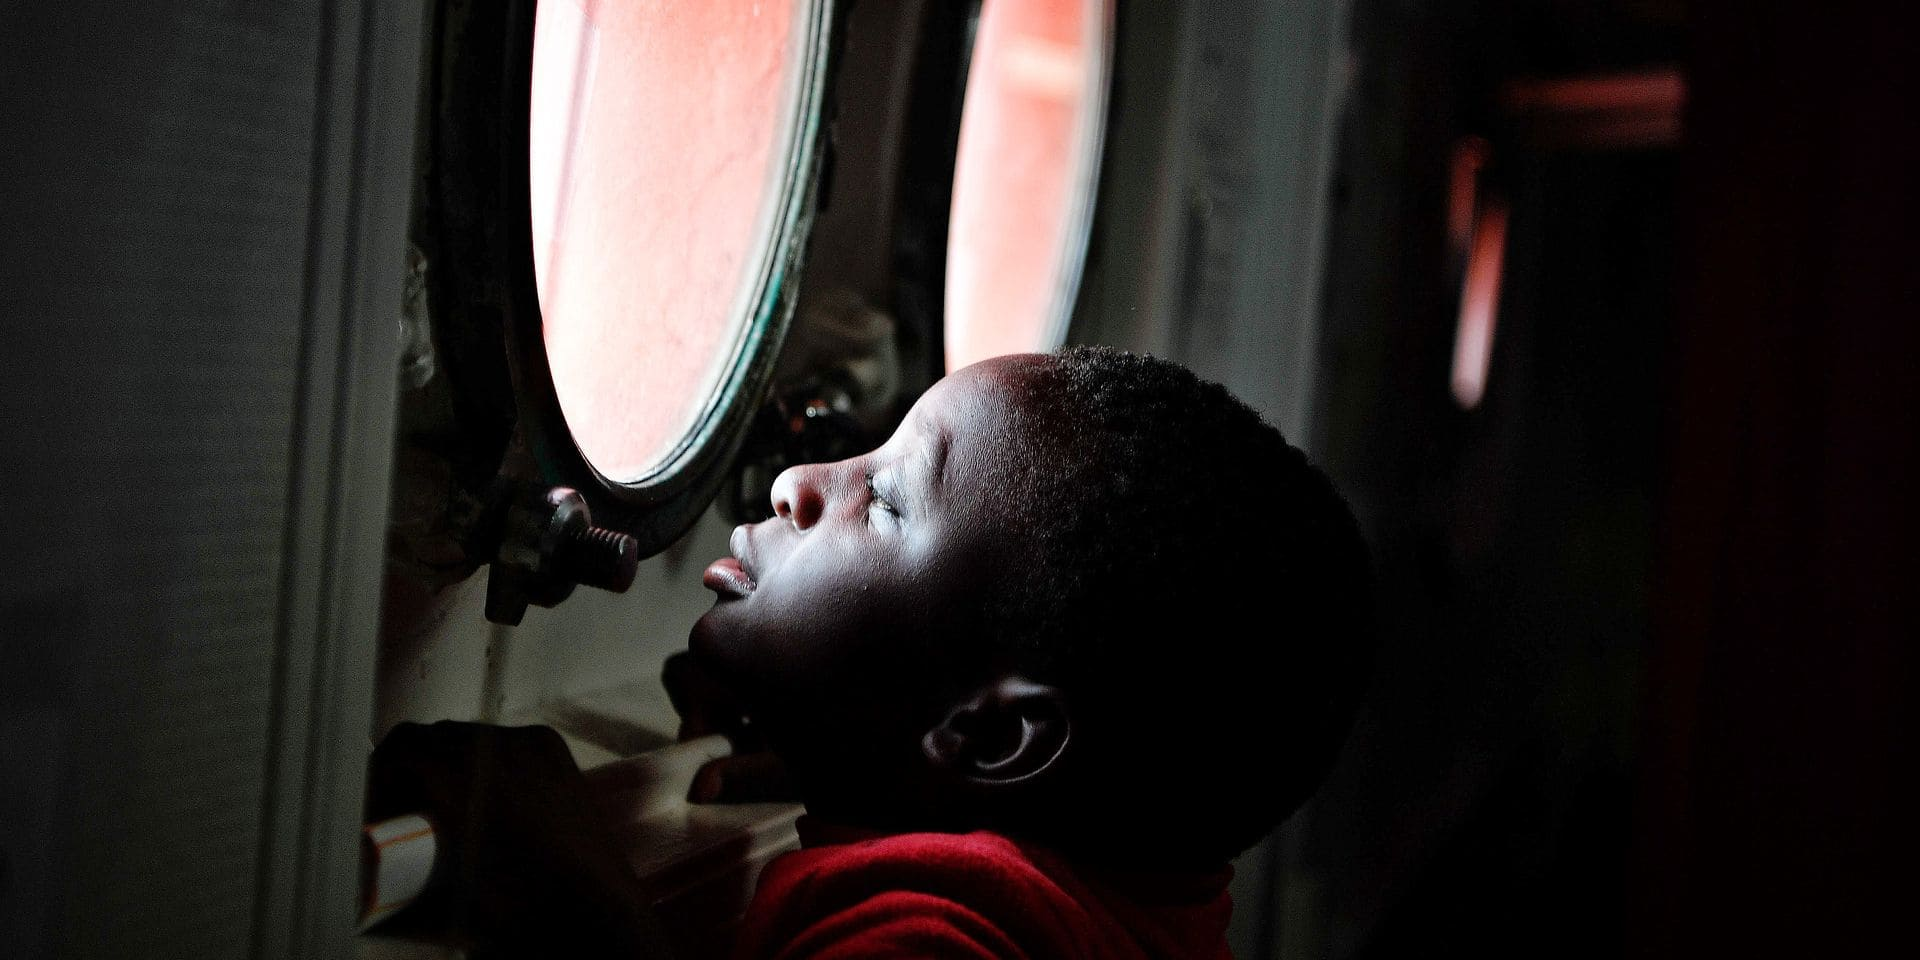 A child tries to peer out from the porthole of the MV Aquarius upon its arrival at the Sicilian port of Messina, on May 14, 2018. On May 12, 2018, 73 migrants of various nationalities, including women and children, were rescued by MV Aquarius a rescue vessel chartered by SOS-Mediterranee and Doctors Without Borders (MSF). / AFP PHOTO / LOUISA GOULIAMAKI